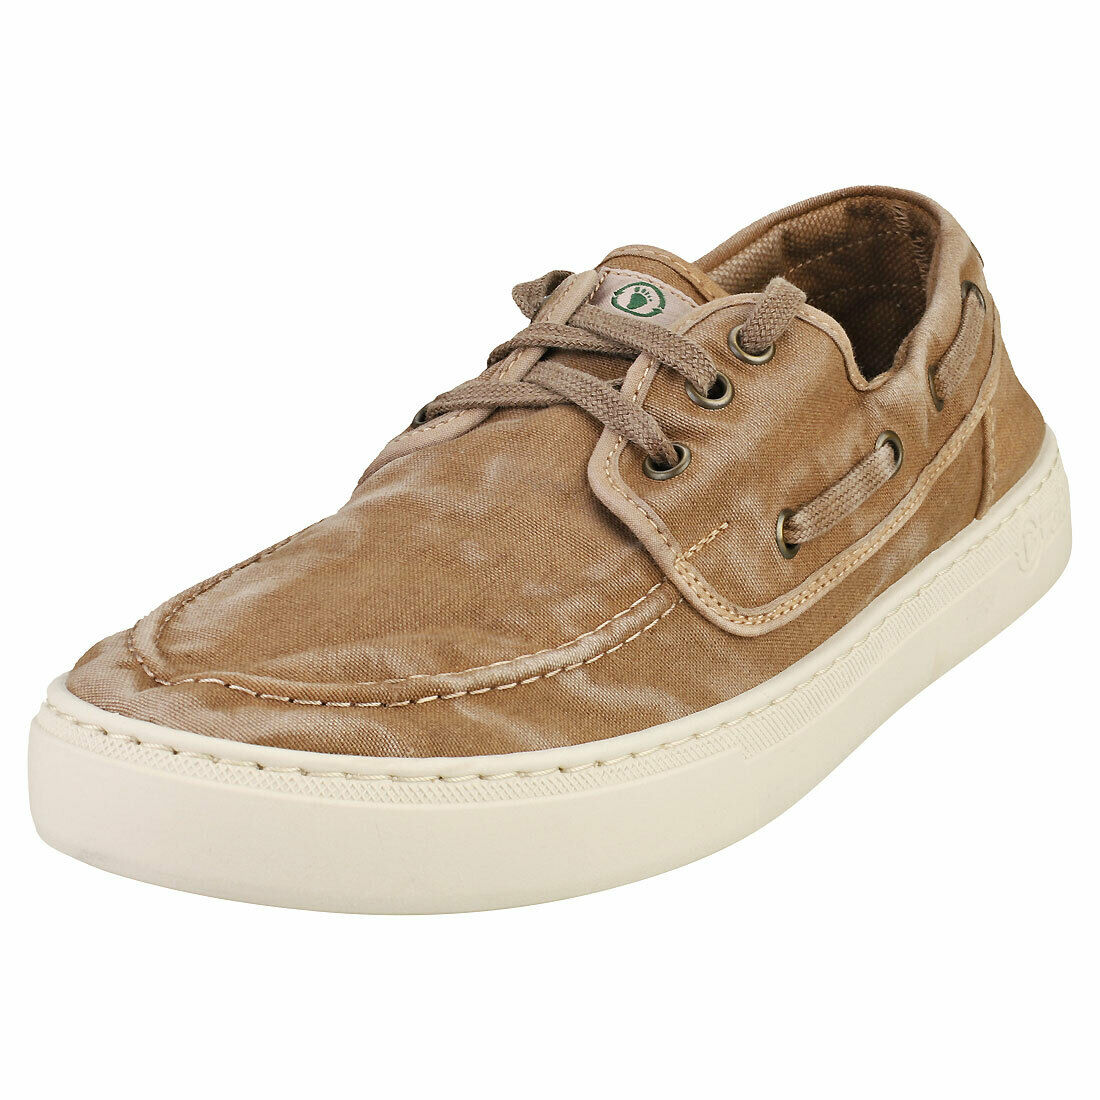 Natural World Old Quercia Mens Beige Casual Shoes - 11 UK